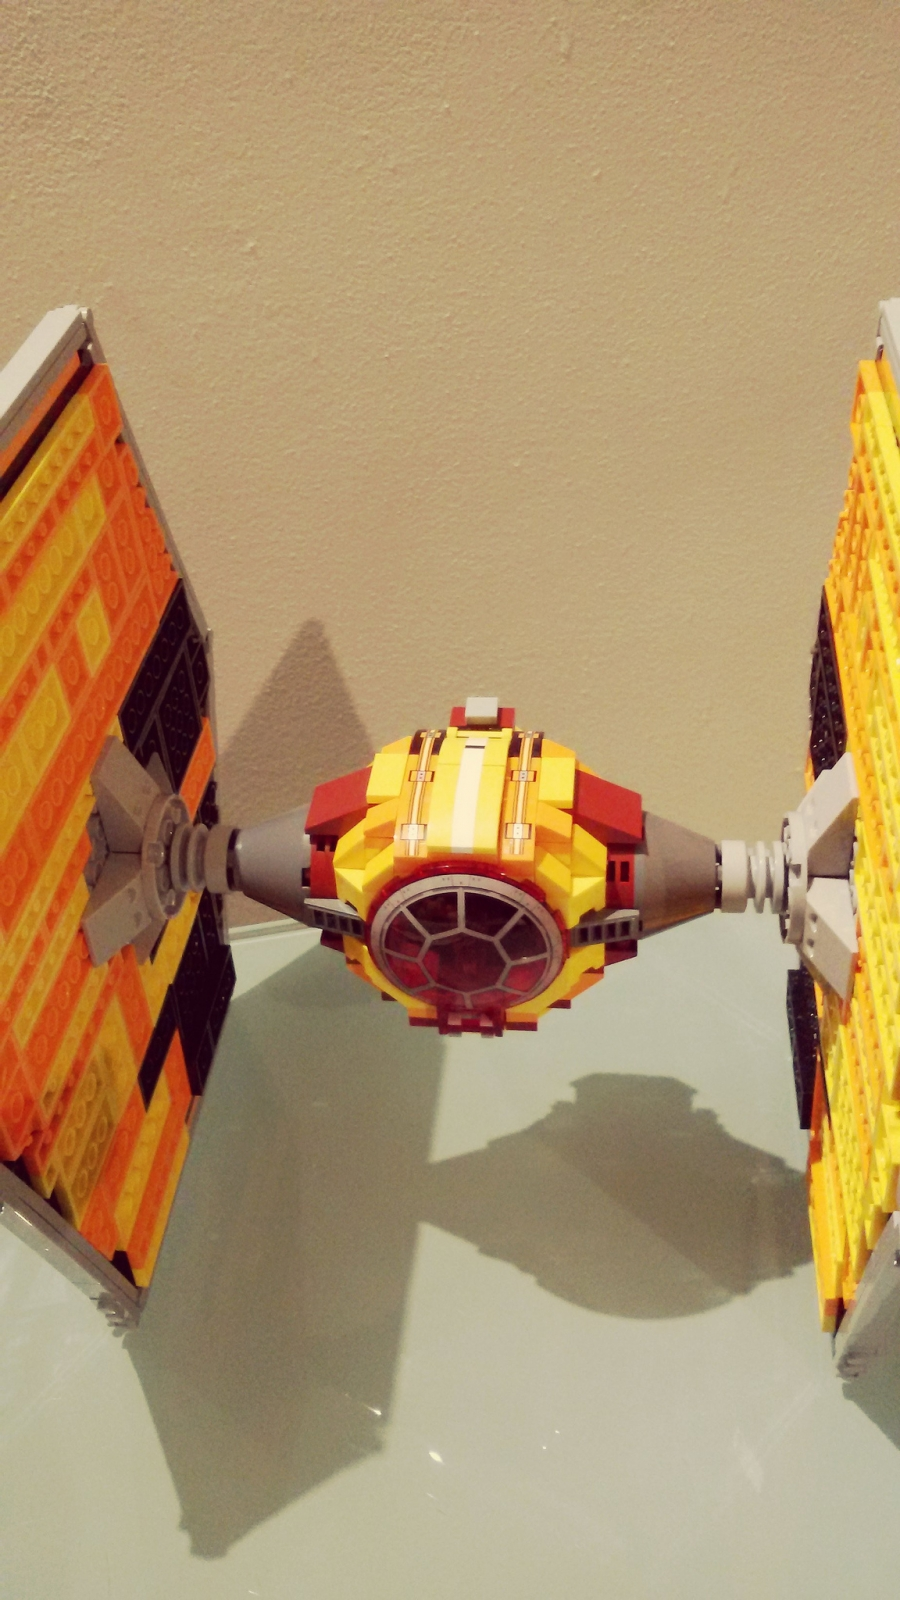 TIE FIGHTER SABINE